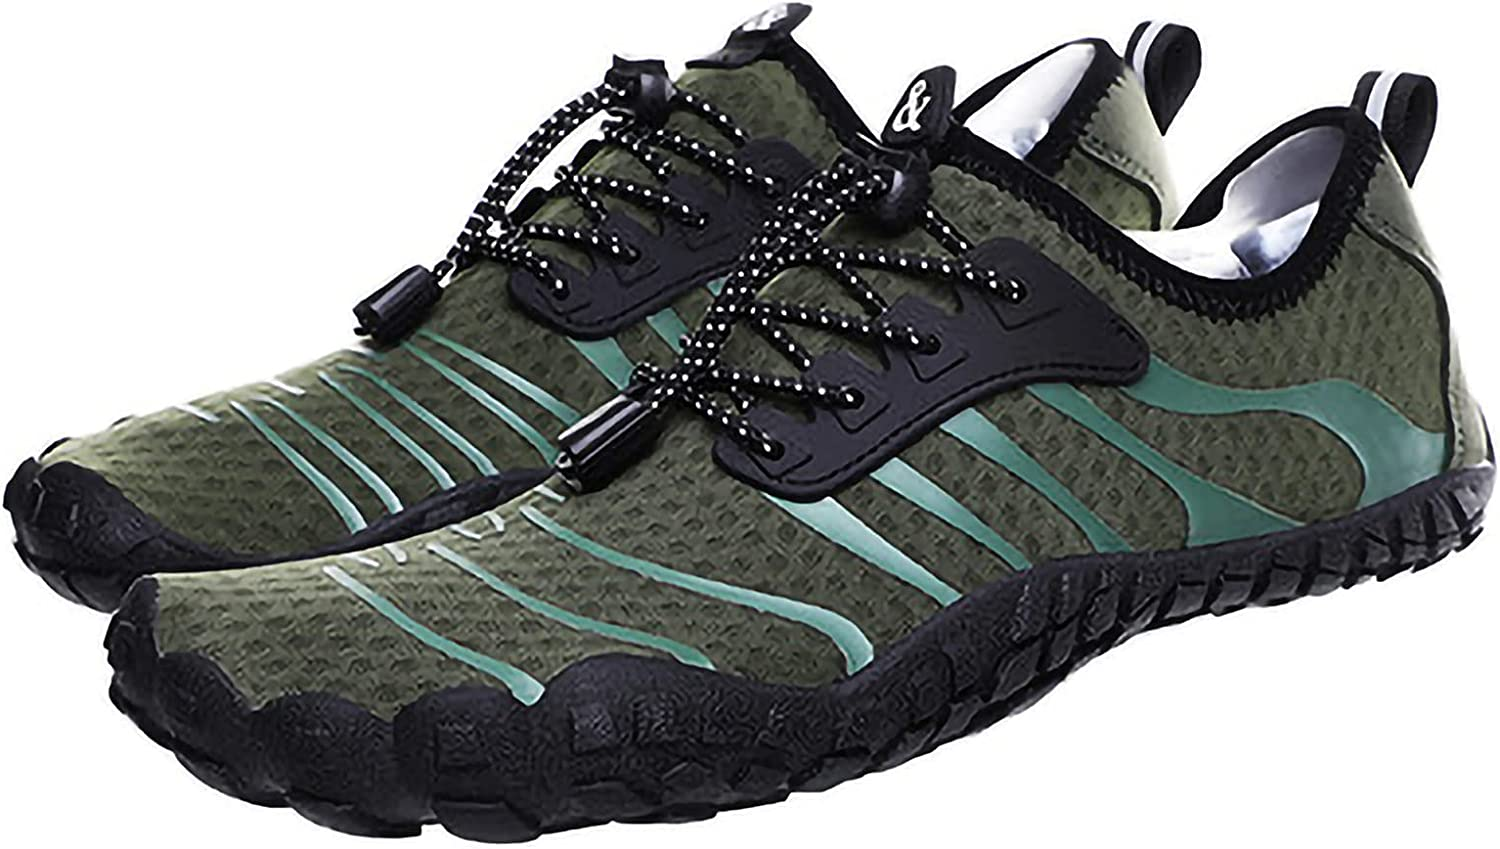 Water Men's Popular Ranking TOP9 overseas Shoes Mesh Breathable Rock Climb Soft Bottom